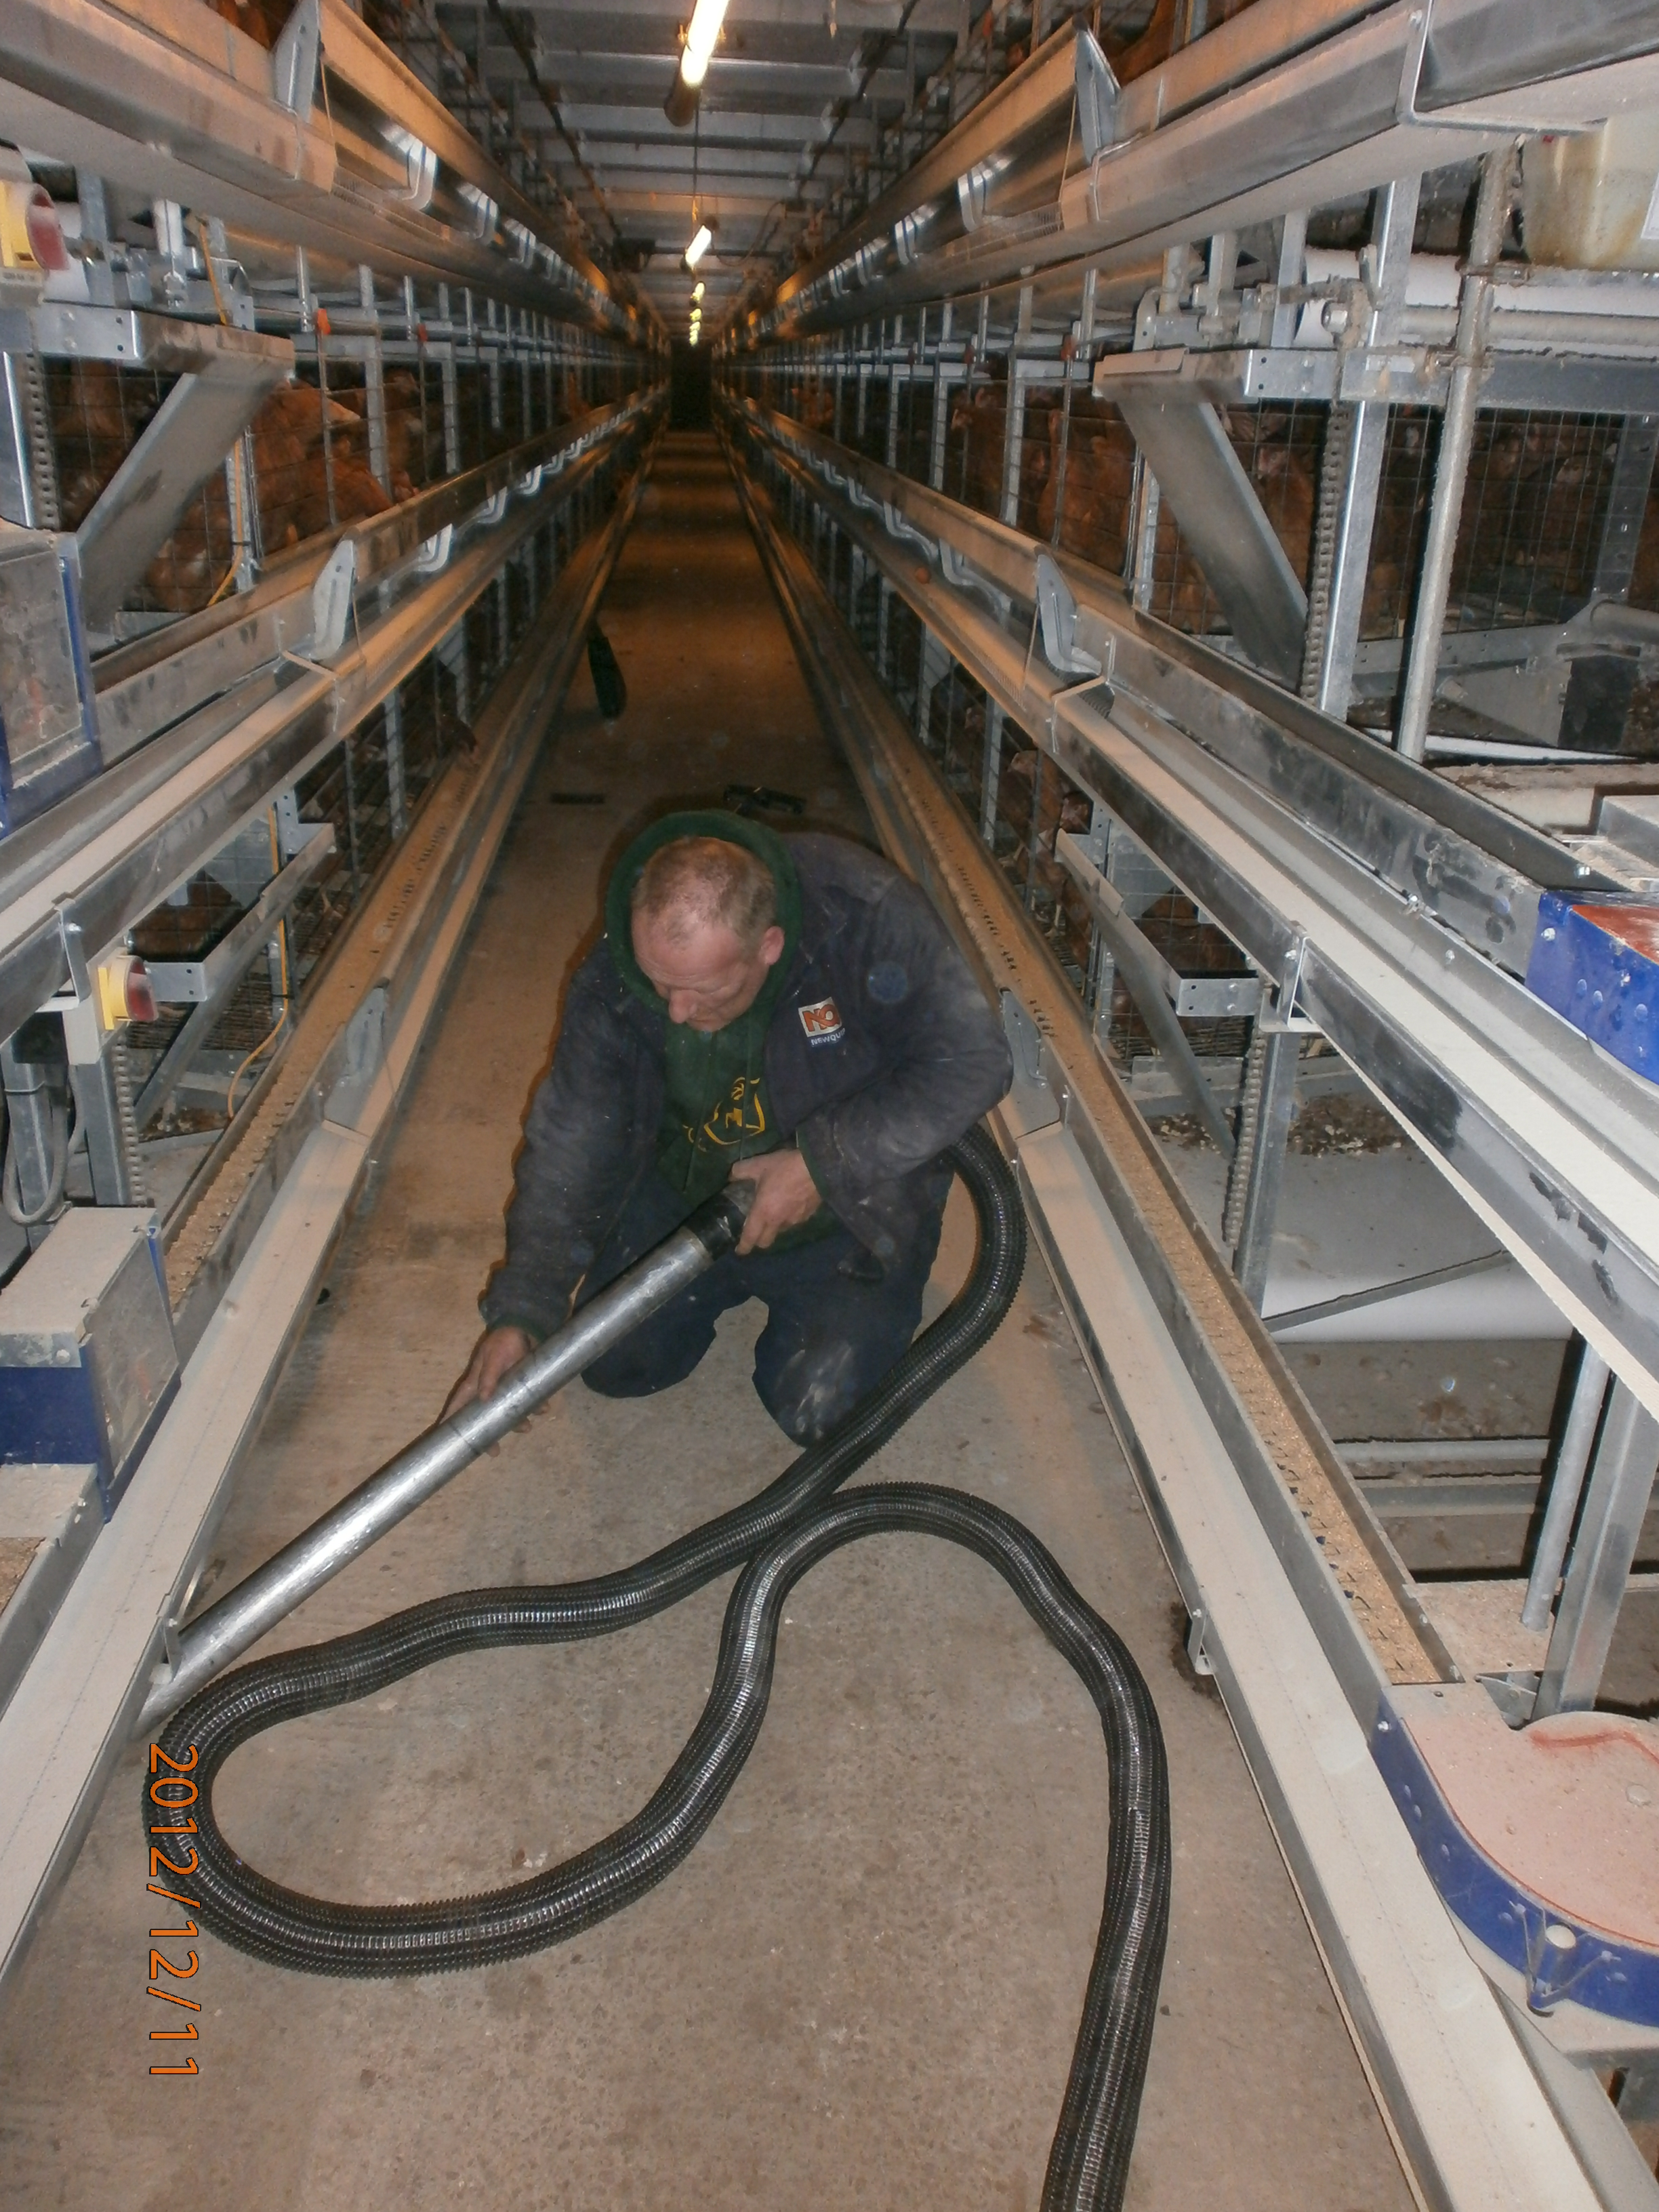 Craig Wilkinson Cleaning His Poultry Sheds With A Big Brute Vacuum